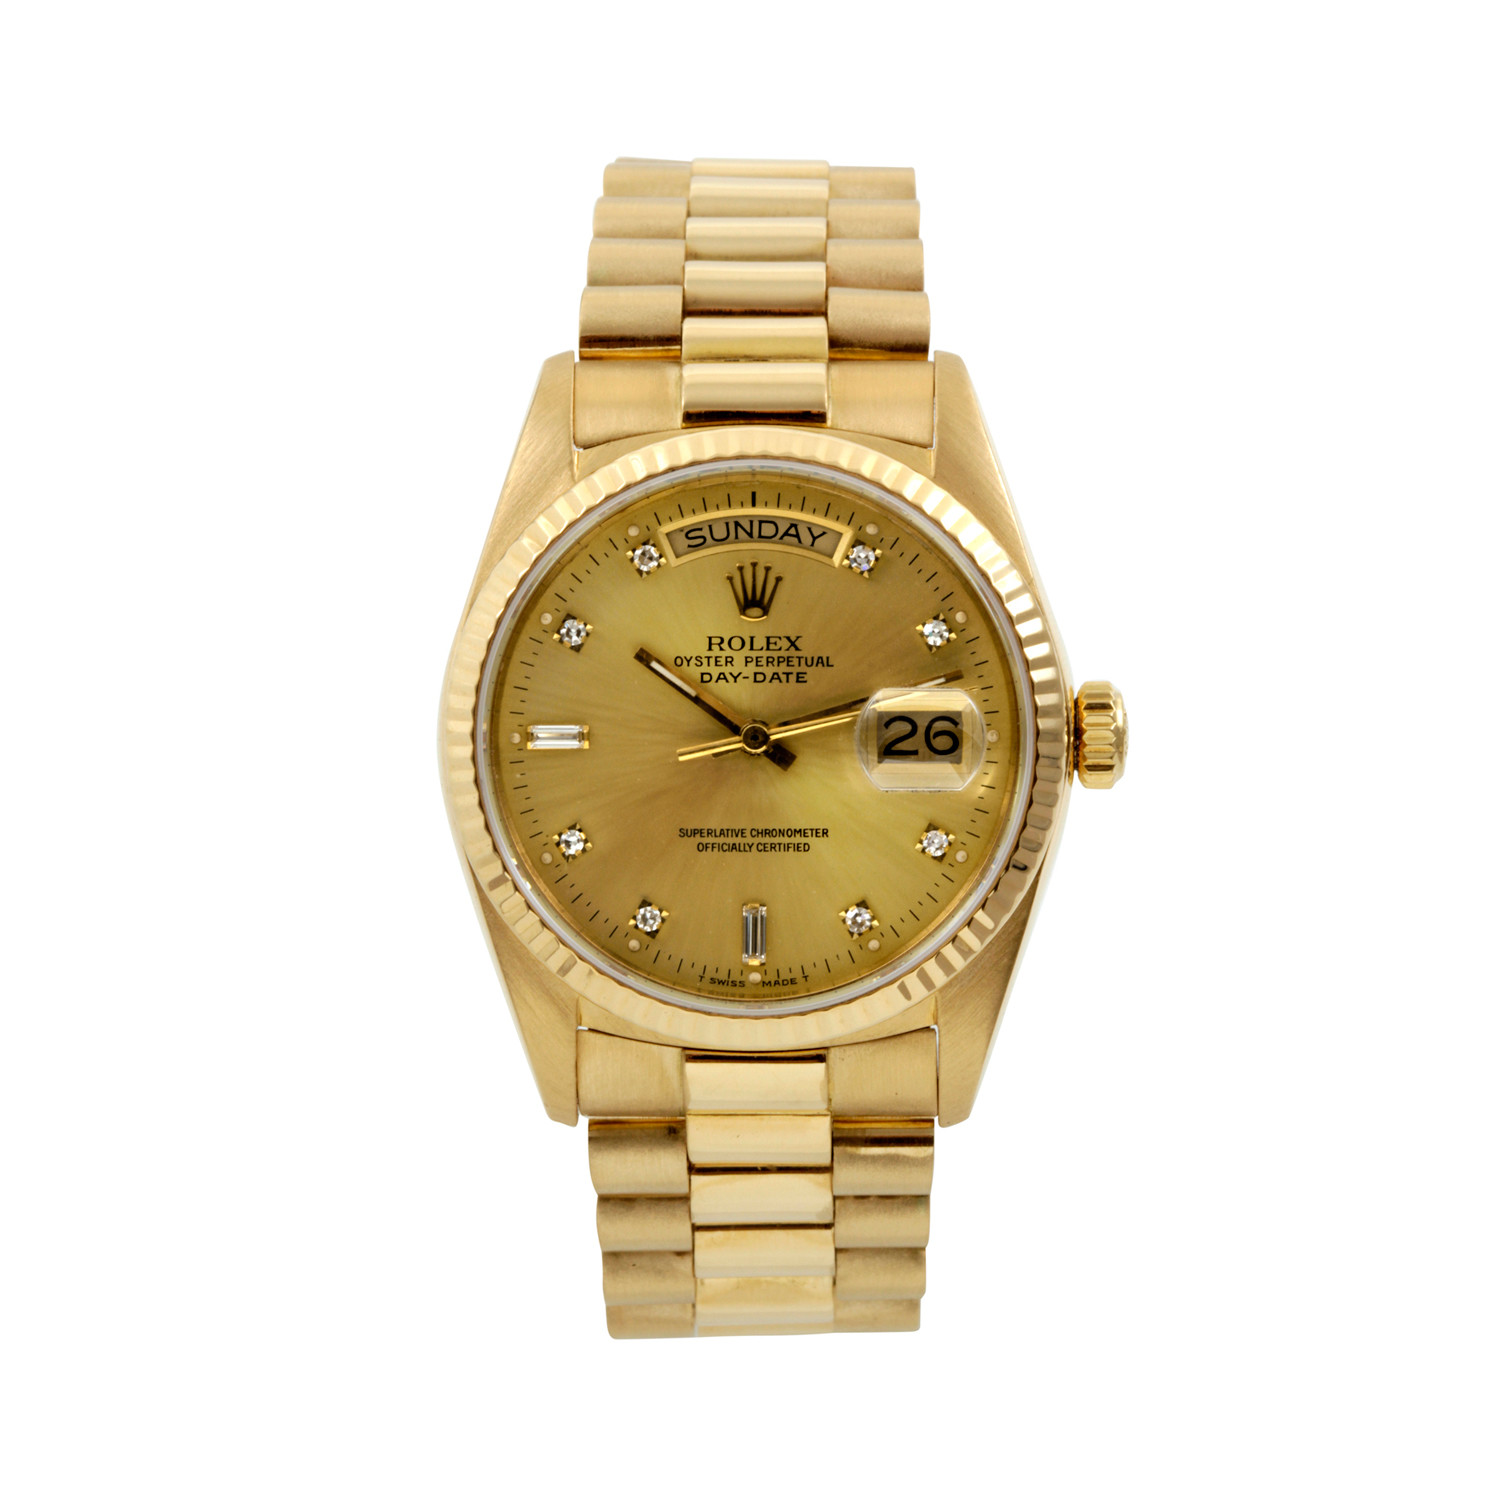 Rolex day date 36 price for Rolex day date 36